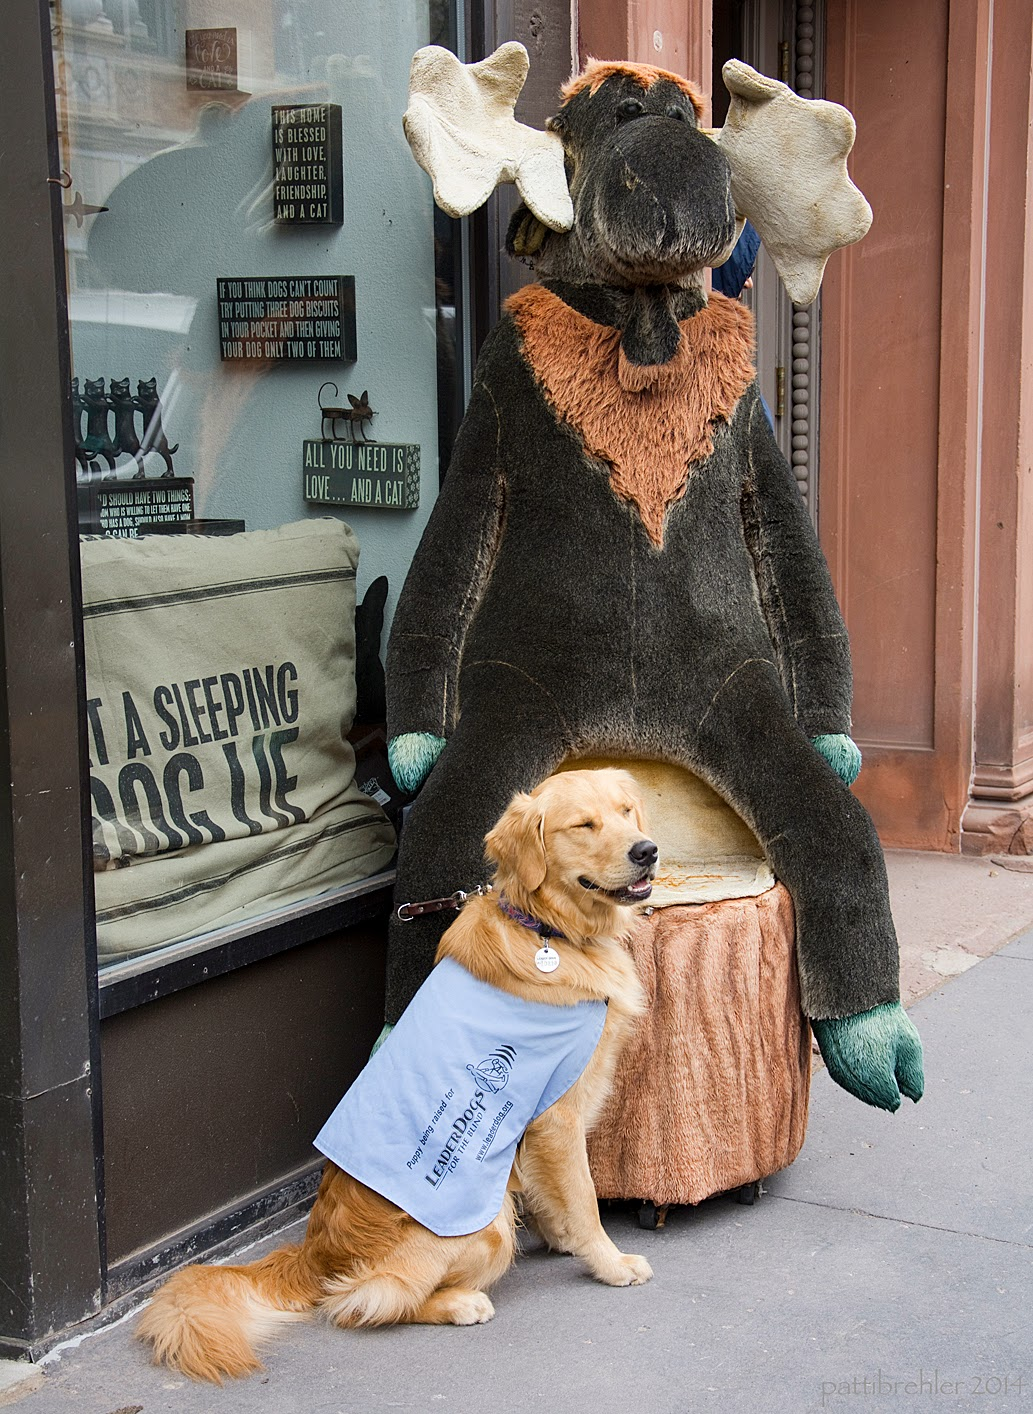 A golden retriever puppy is sitting in front of a storefront window and a large wooden statue of a moose. The moose is sitting on a tree stump. The puppy is wearing the baby-blue wokring jacket - a Future Leader Dog.